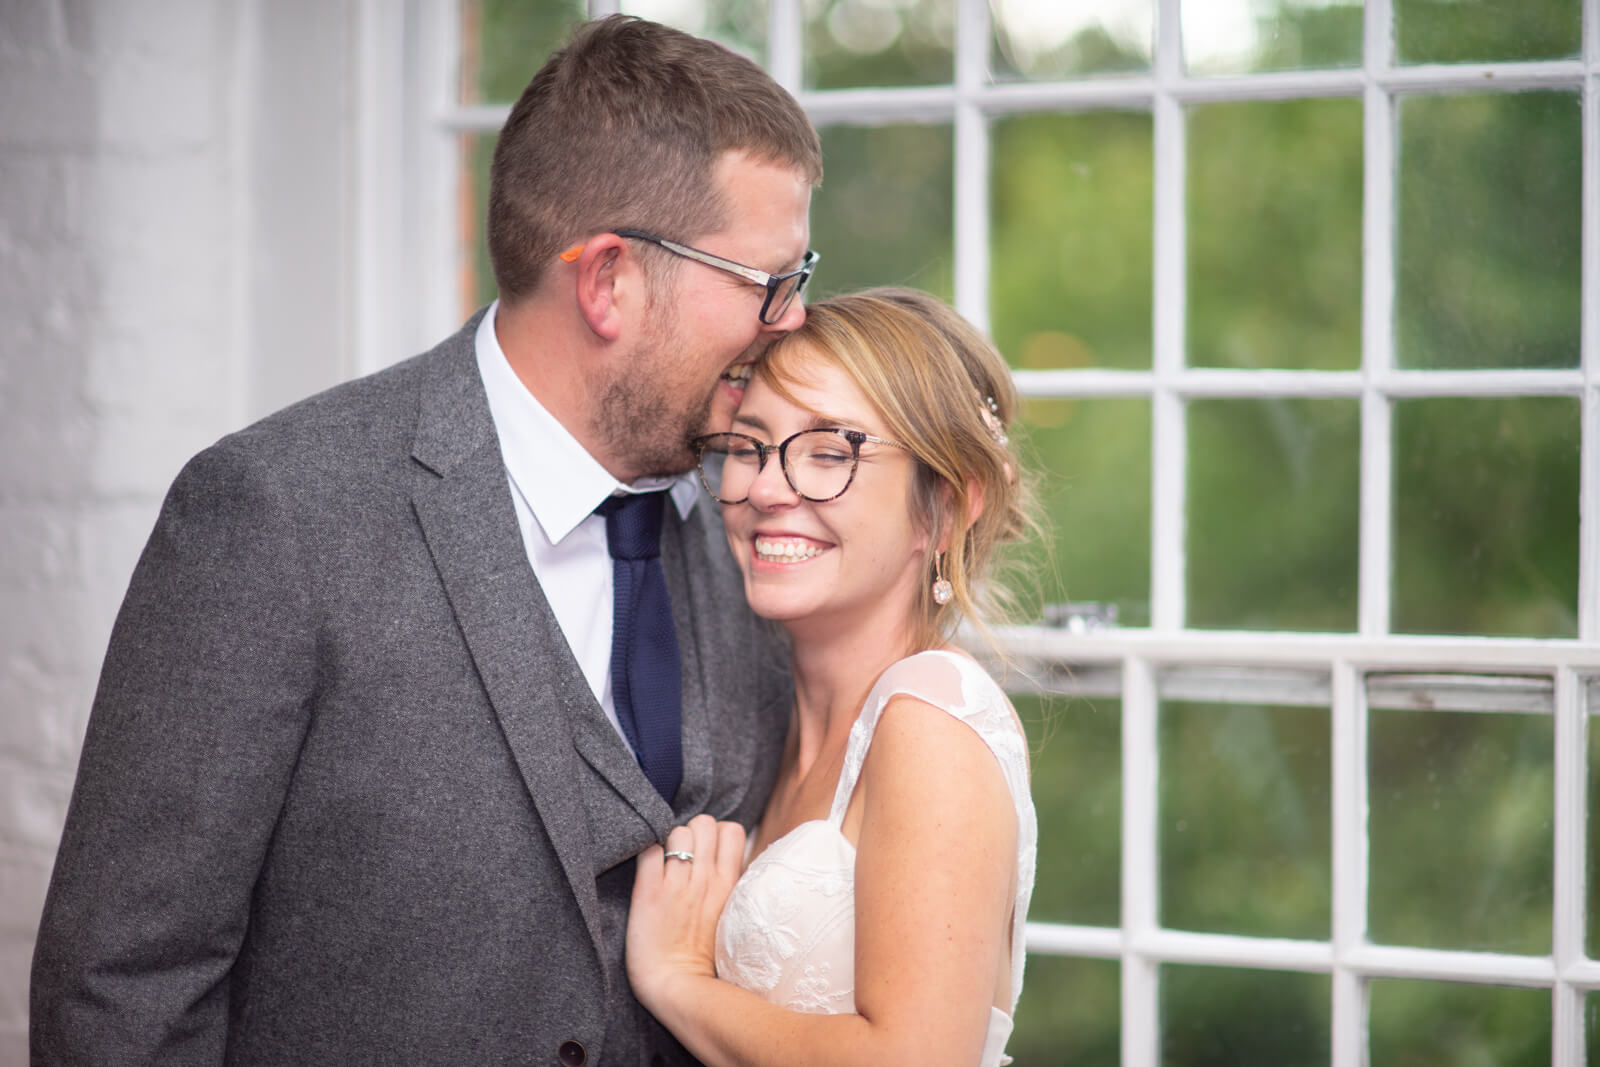 Bride and groom laugh while having their portrait taken against a window